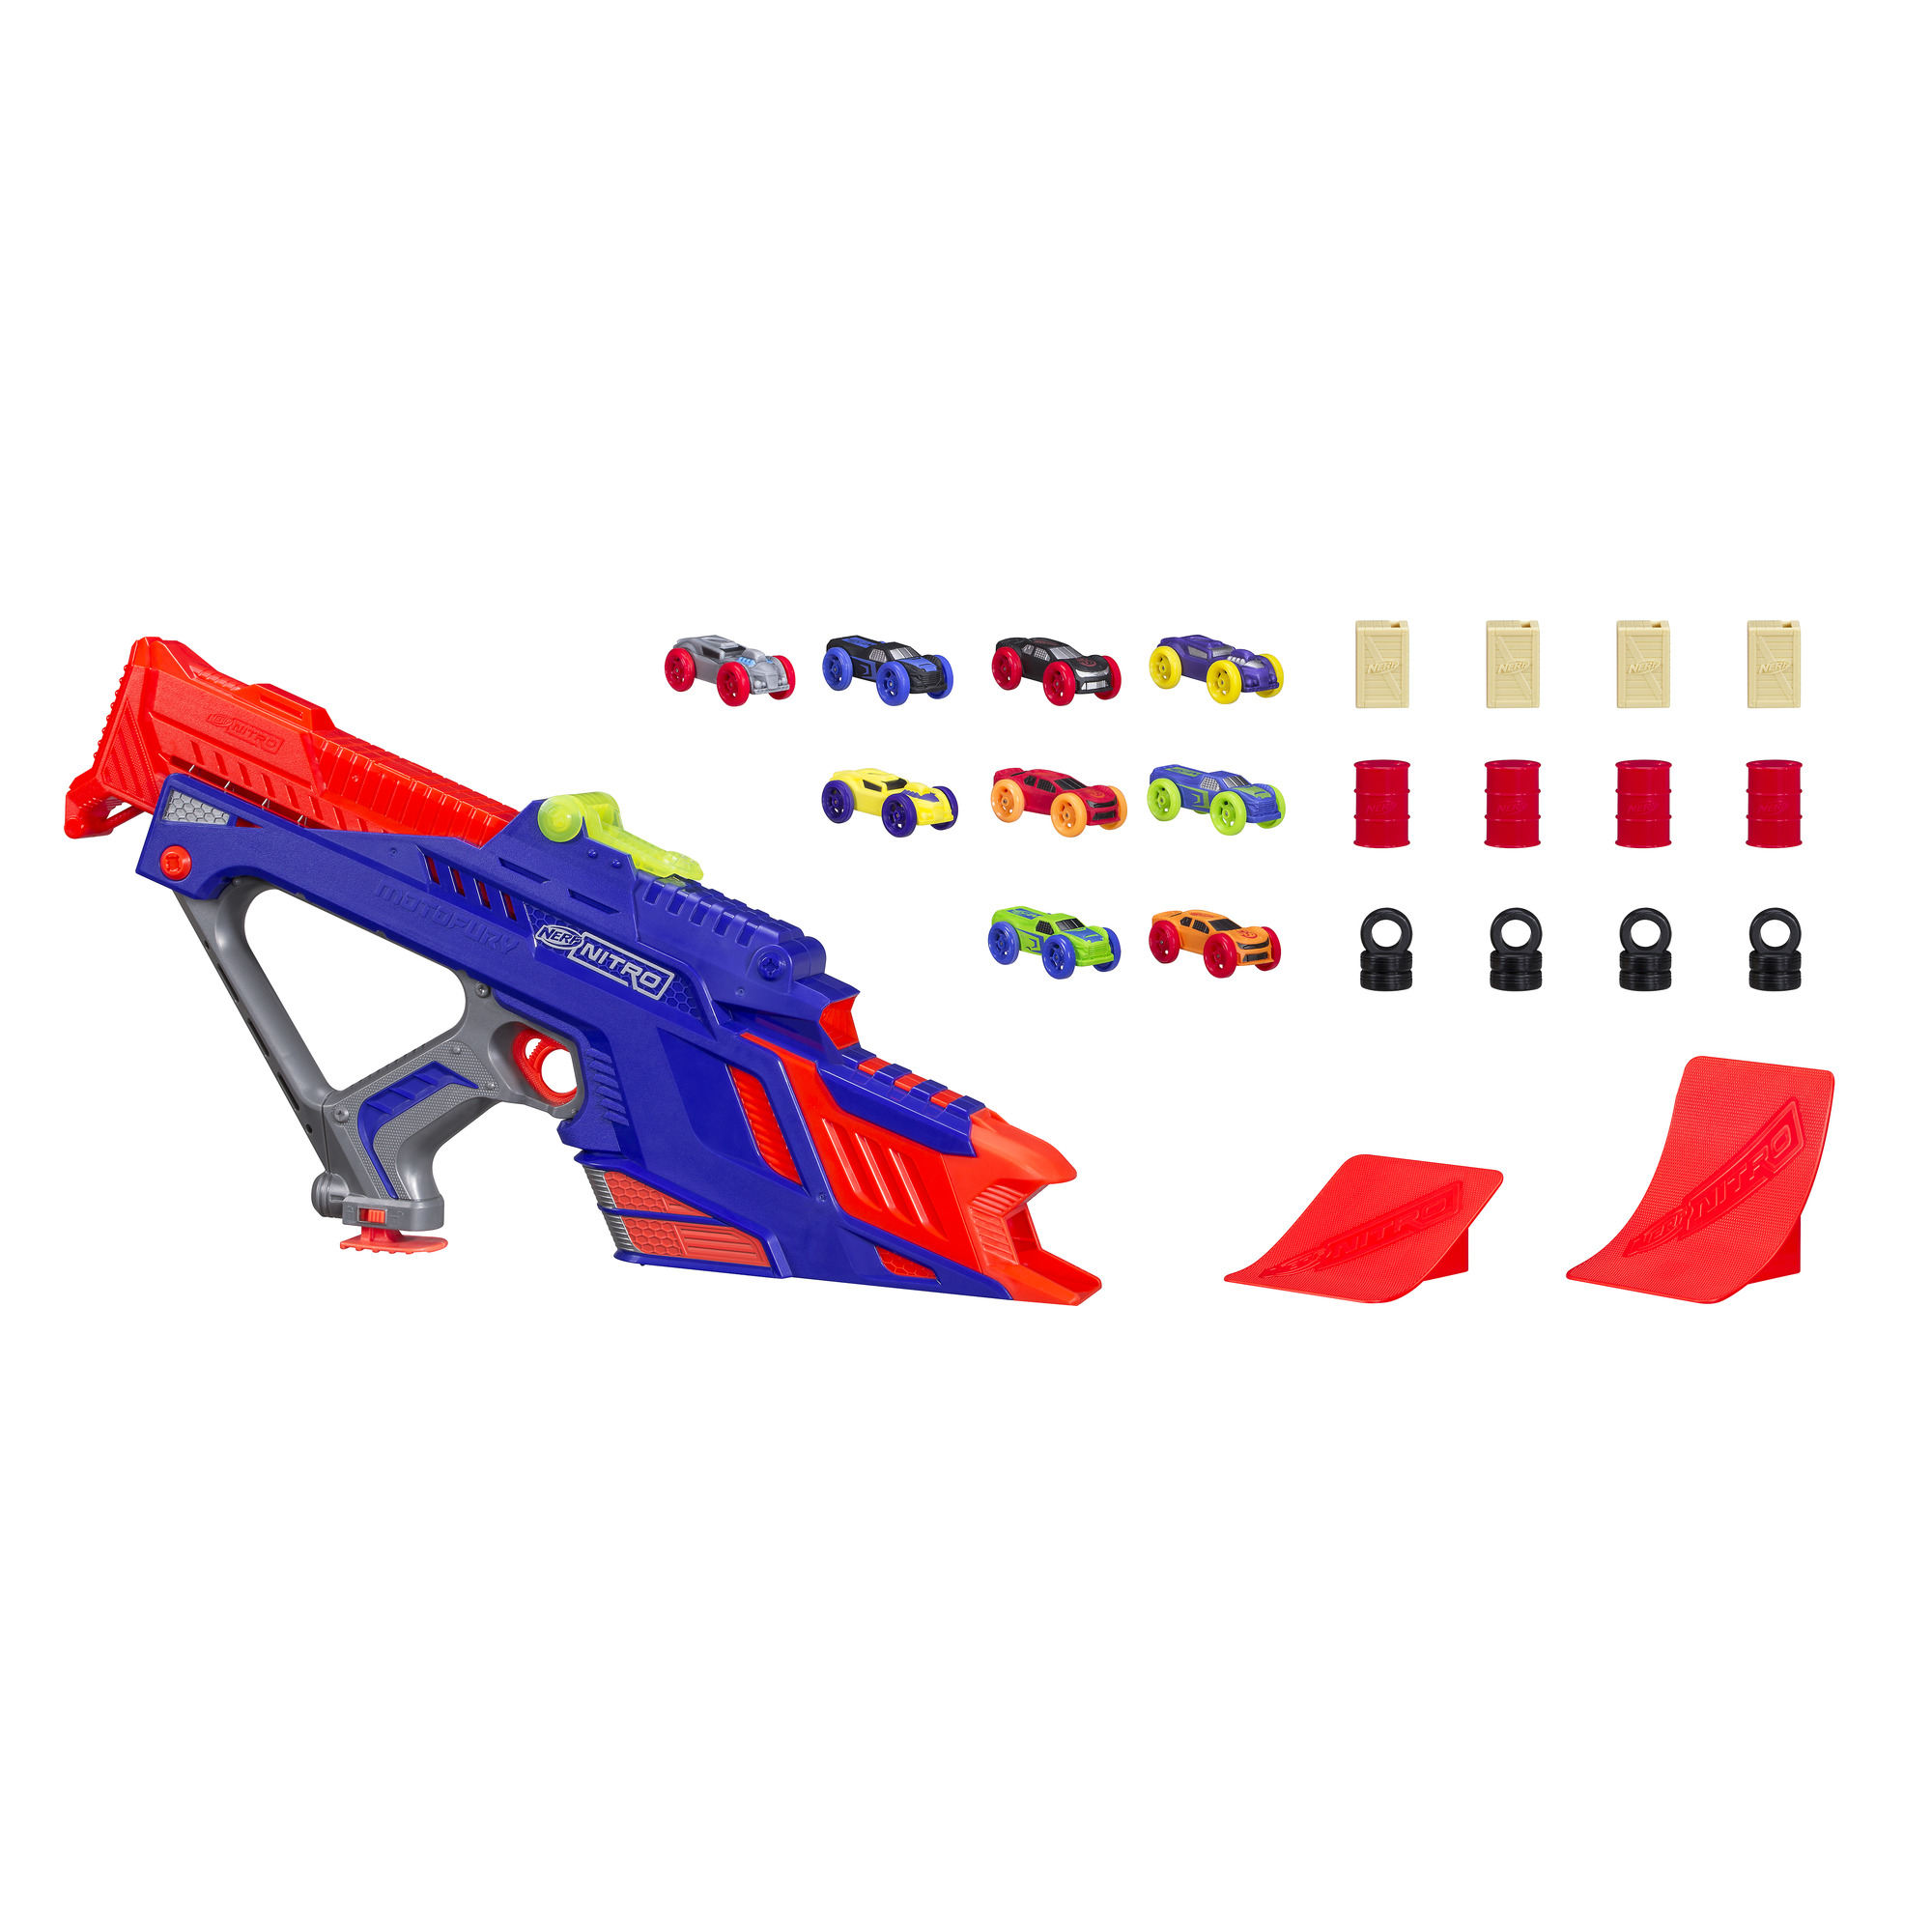 Nerf Nitro MotorFury Rapid Rally by Hasbro